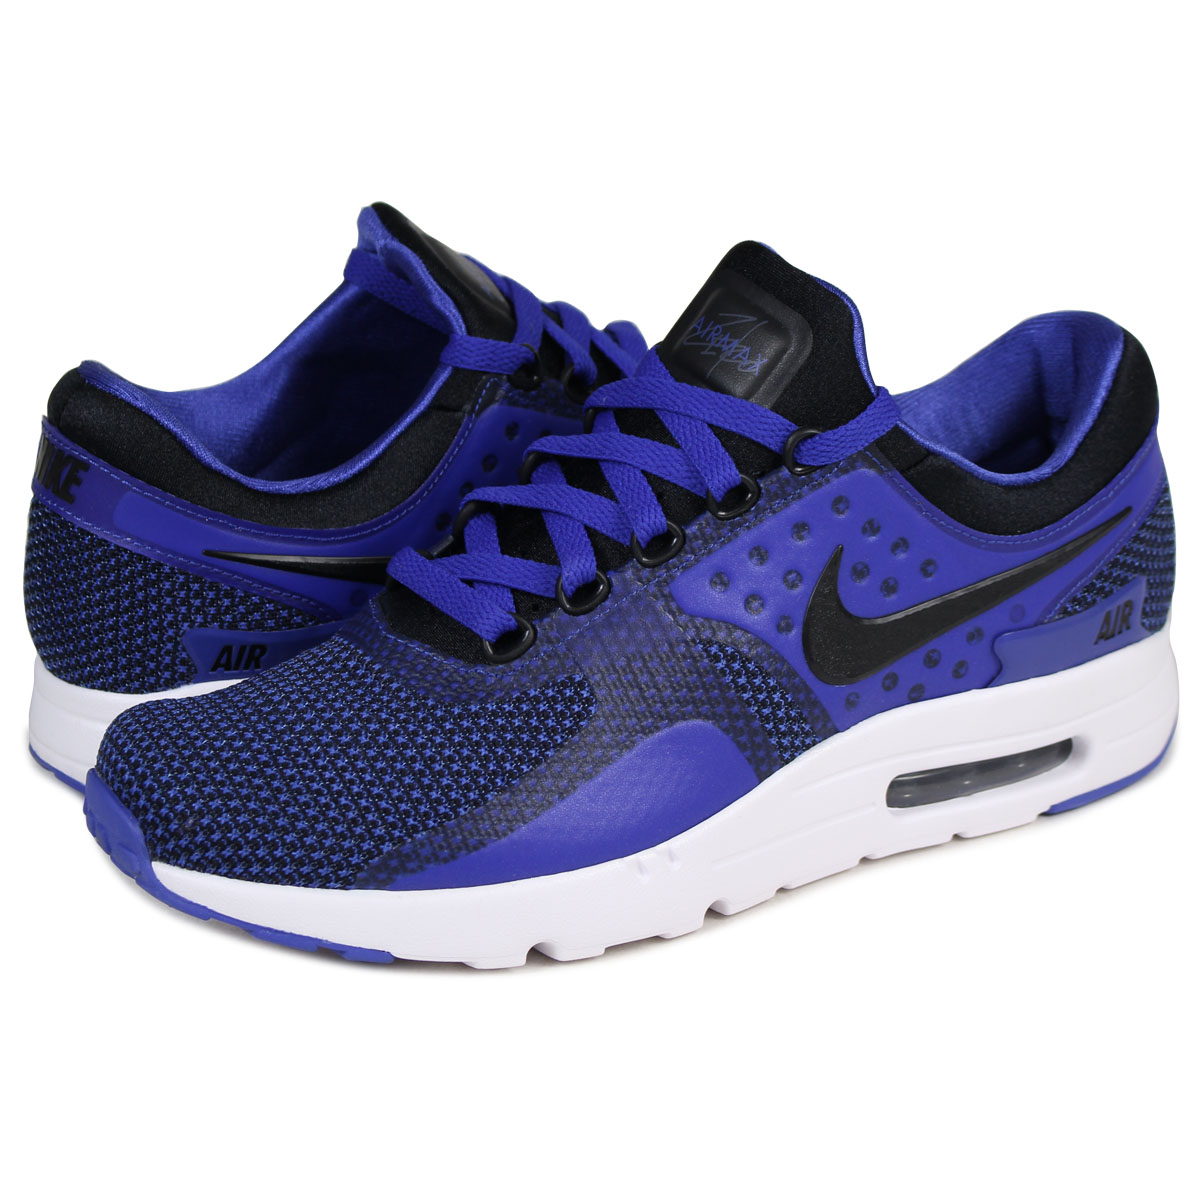 newest 23c5f af4a5 ALLSPORTS  NIKE AIR MAX ZERO ESSENTIAL Kie Ney AMAX zero sneakers  876,070-001 men s shoes blue  10 4 Shinnyu load    Rakuten Global Market